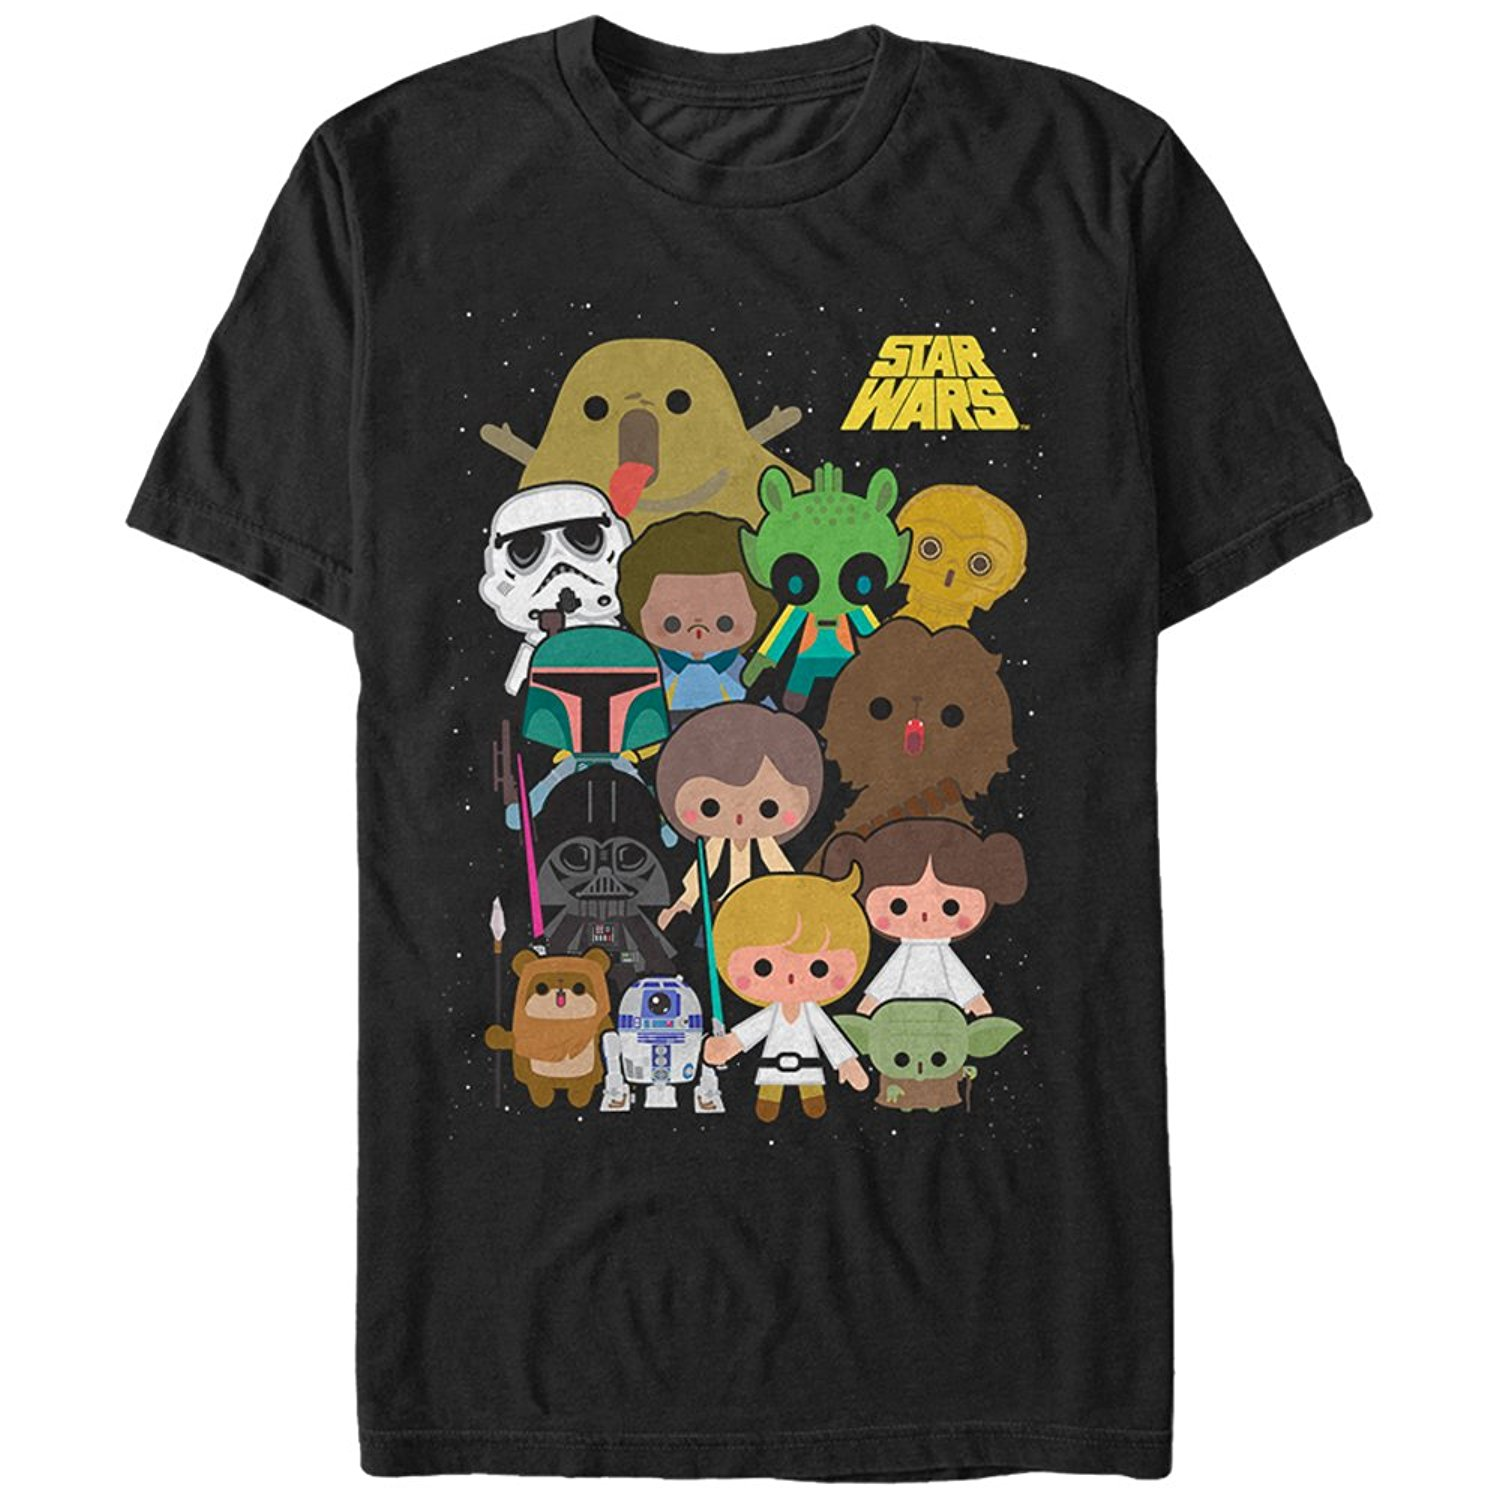 New 2017 Fashion Hot Short Star Wars Cute Cartoon Character Group Mens Graphic T Shirt New Style Crew Neck Tee Shirt For Men